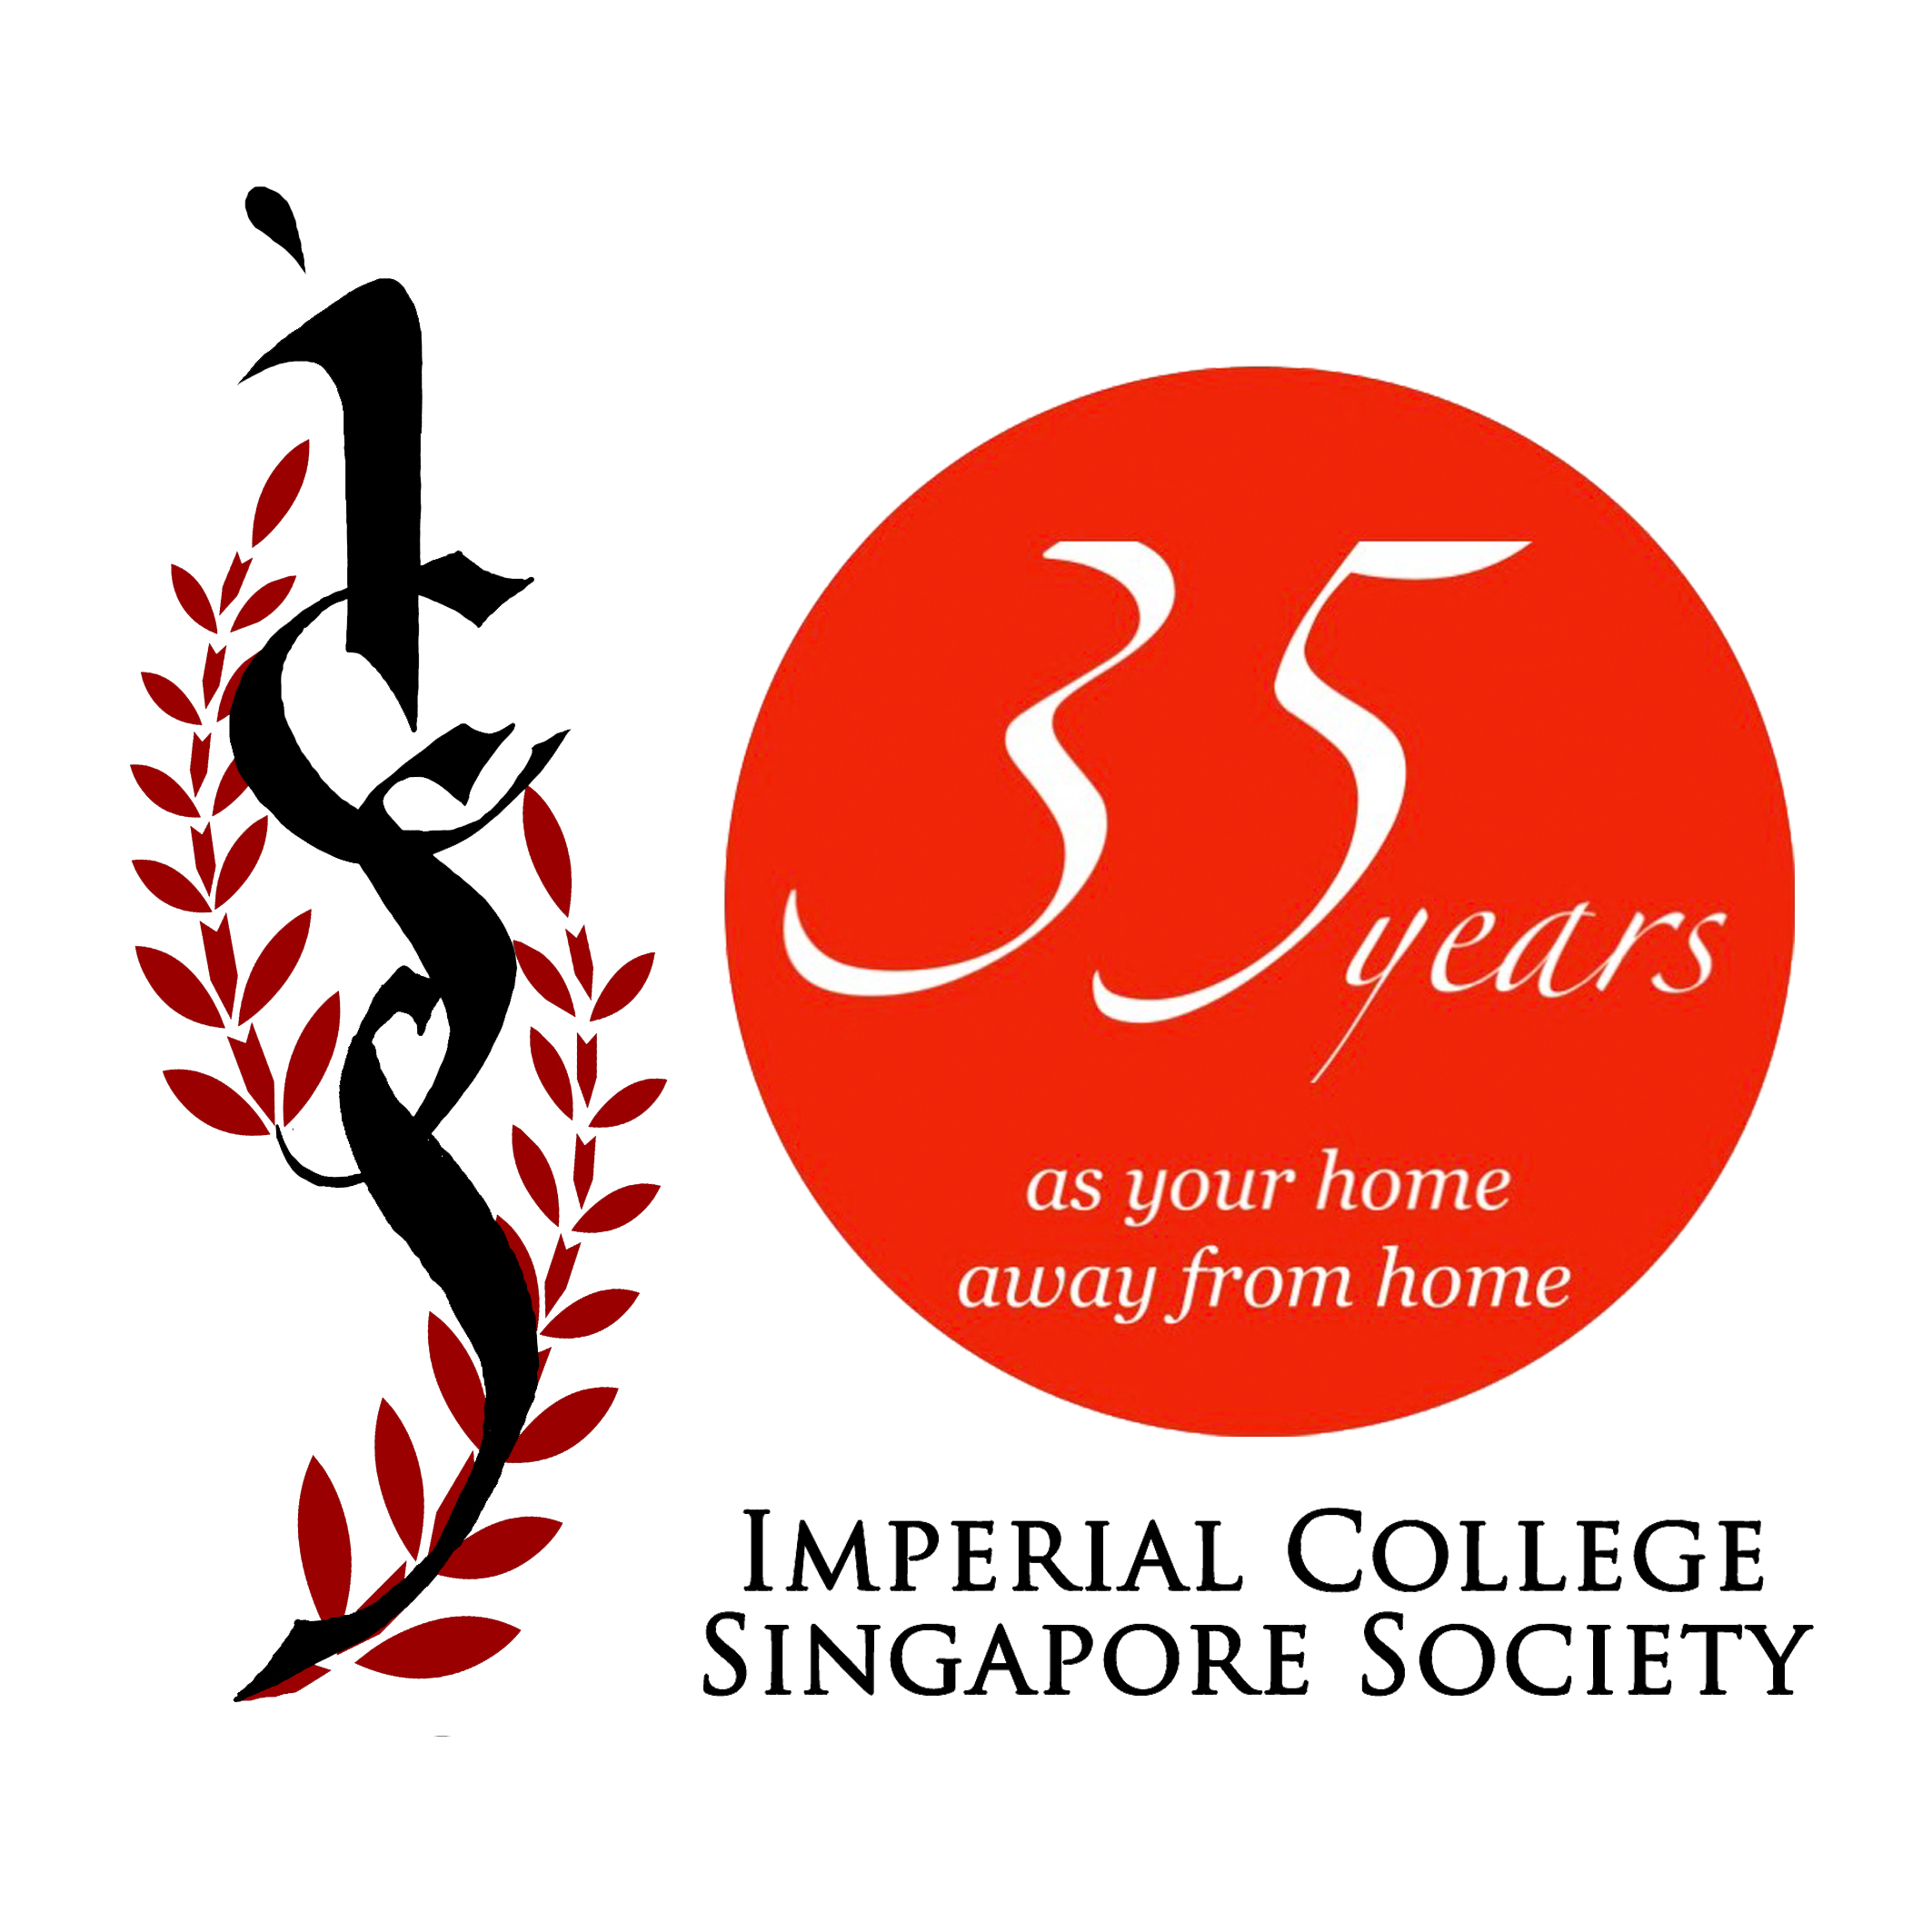 Imperial College Singapore Society | a home away from home